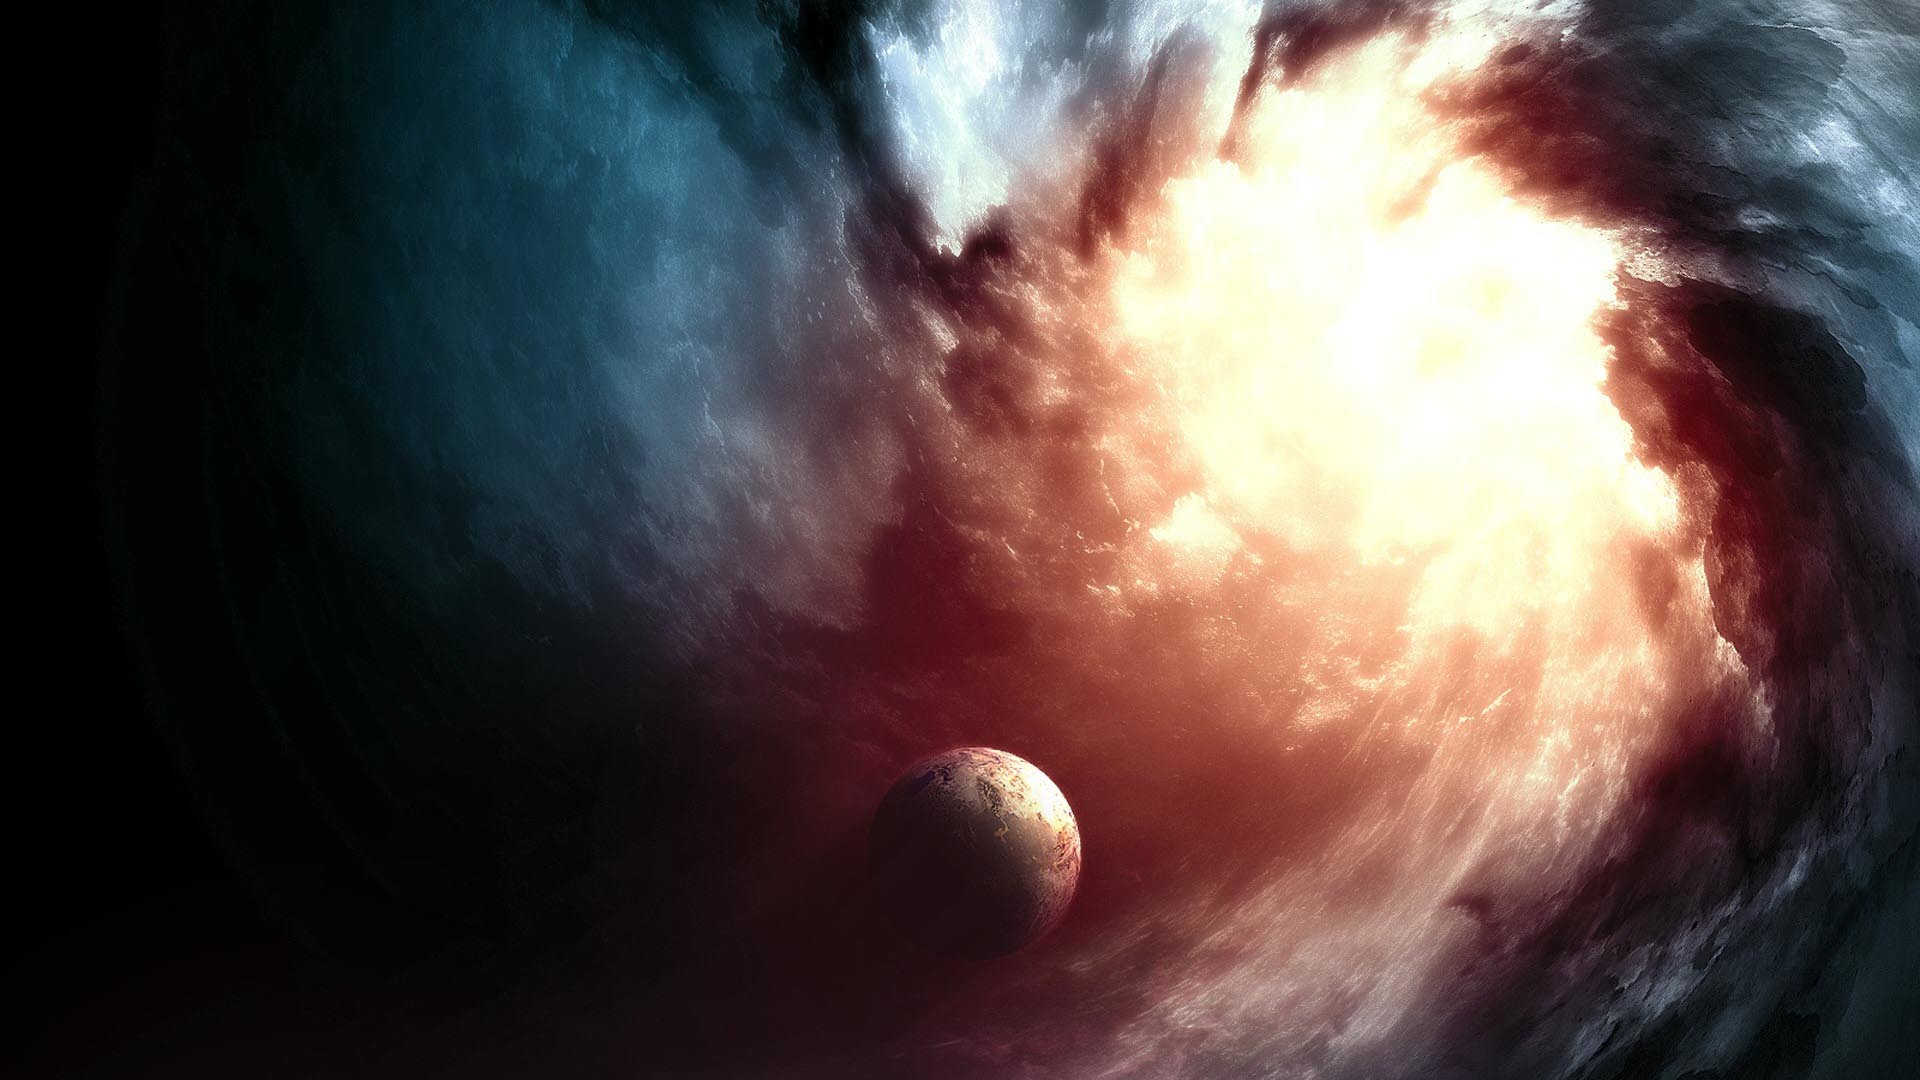 … black hole wallpapers high quality download free …